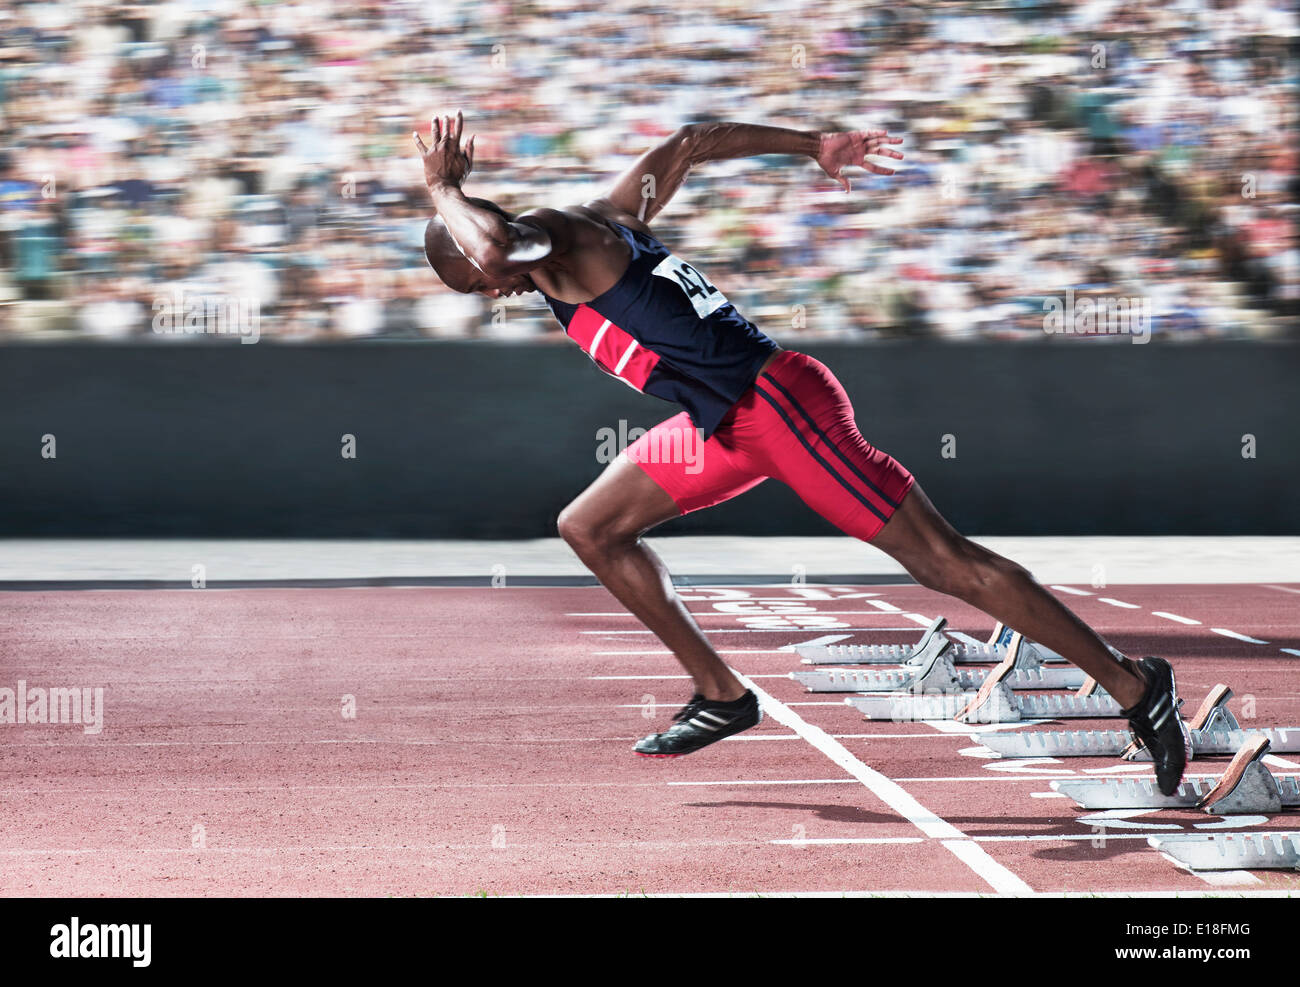 Sprinter taking off from starting block on track - Stock Image